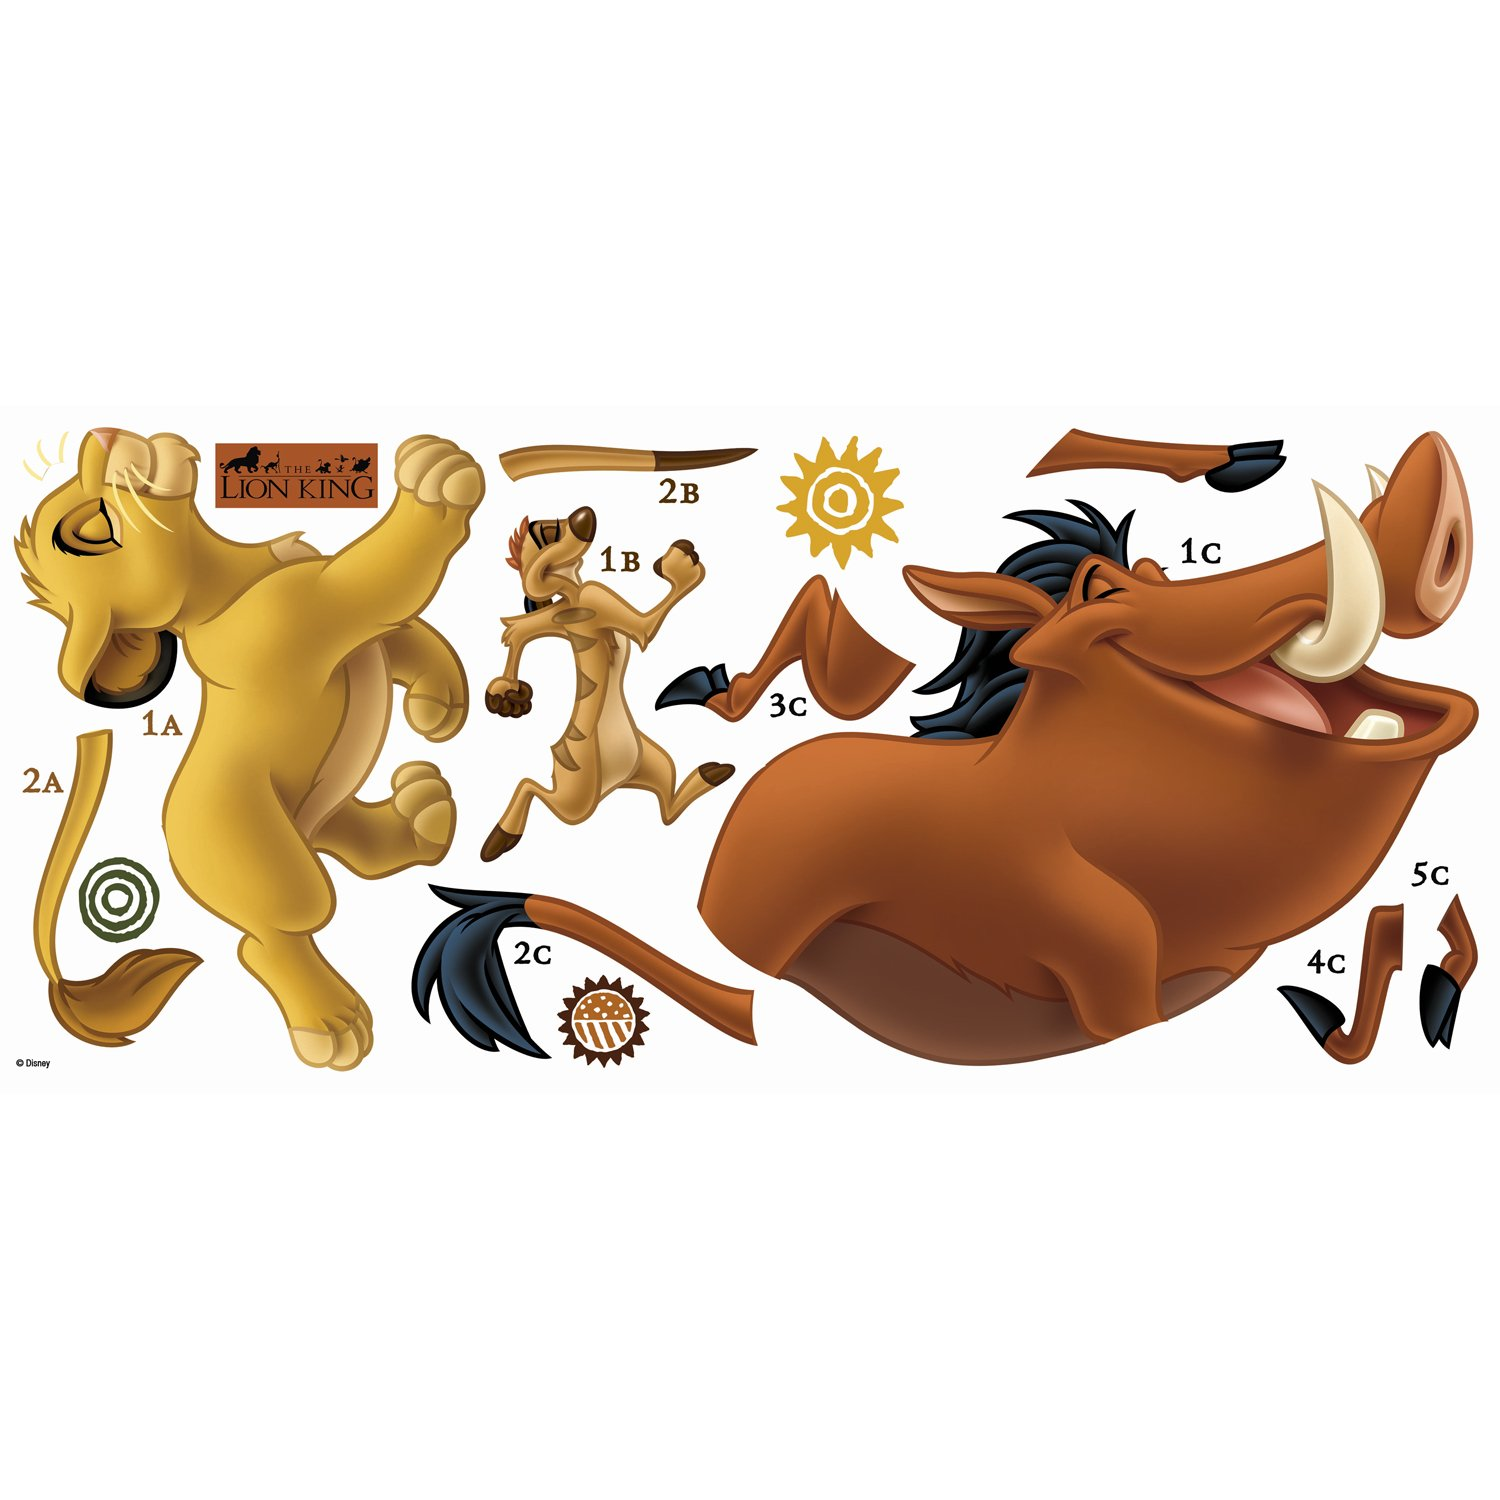 RoomMates The Lion King Peel and Stick Giant Wall Decals by RoomMates